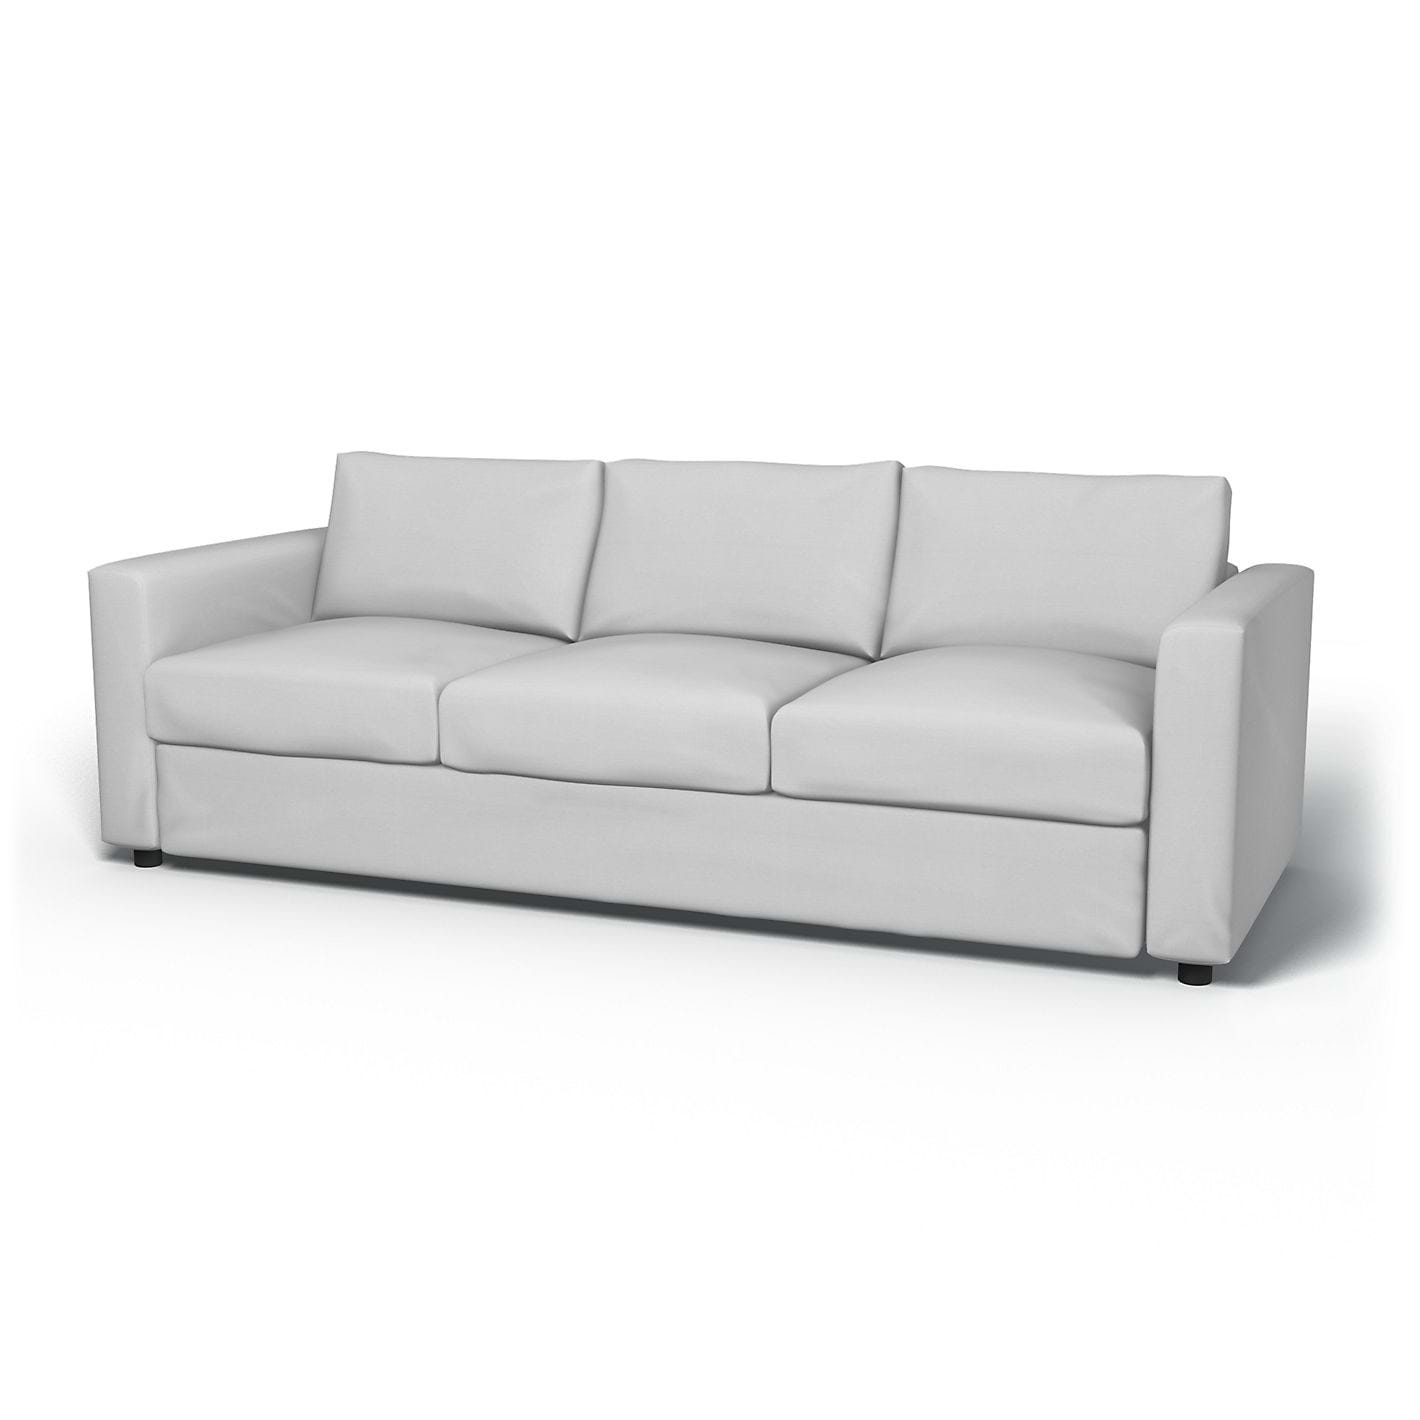 Custom Covers Slipcovers For Ikea Sofas Armchairs Couches Bemz